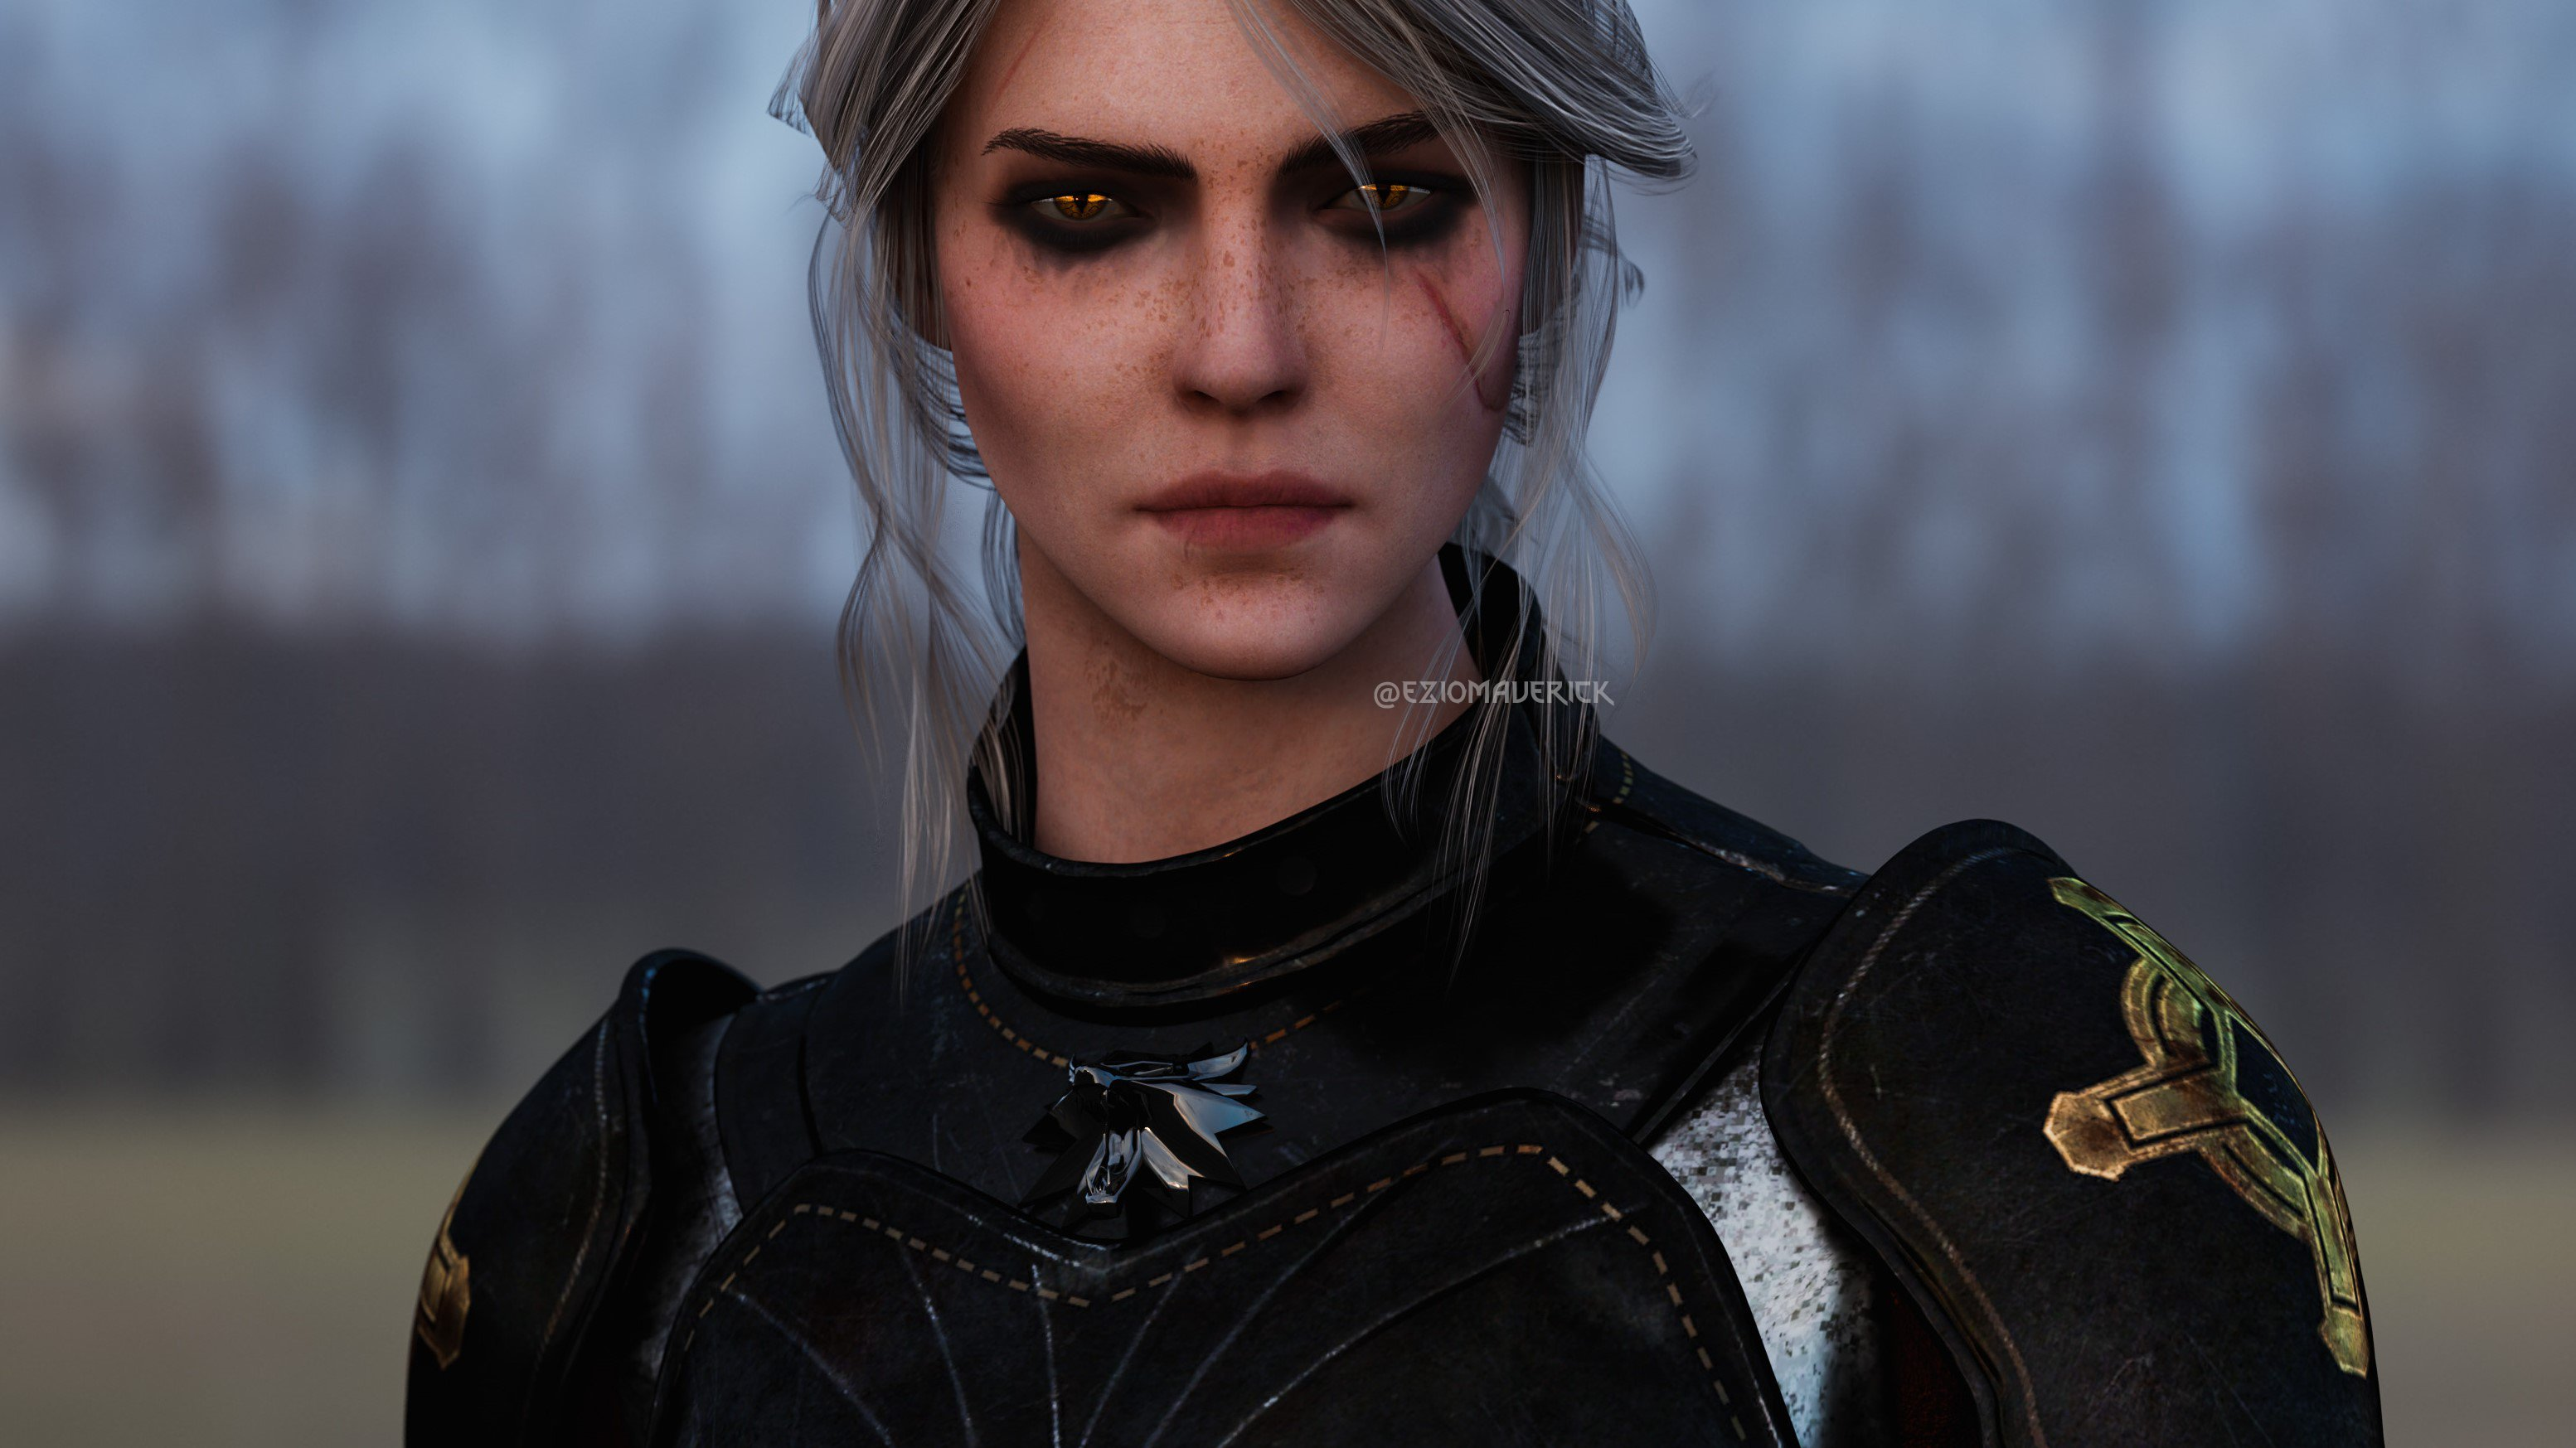 cirilla - Witcher 3: Wild Hunt, the